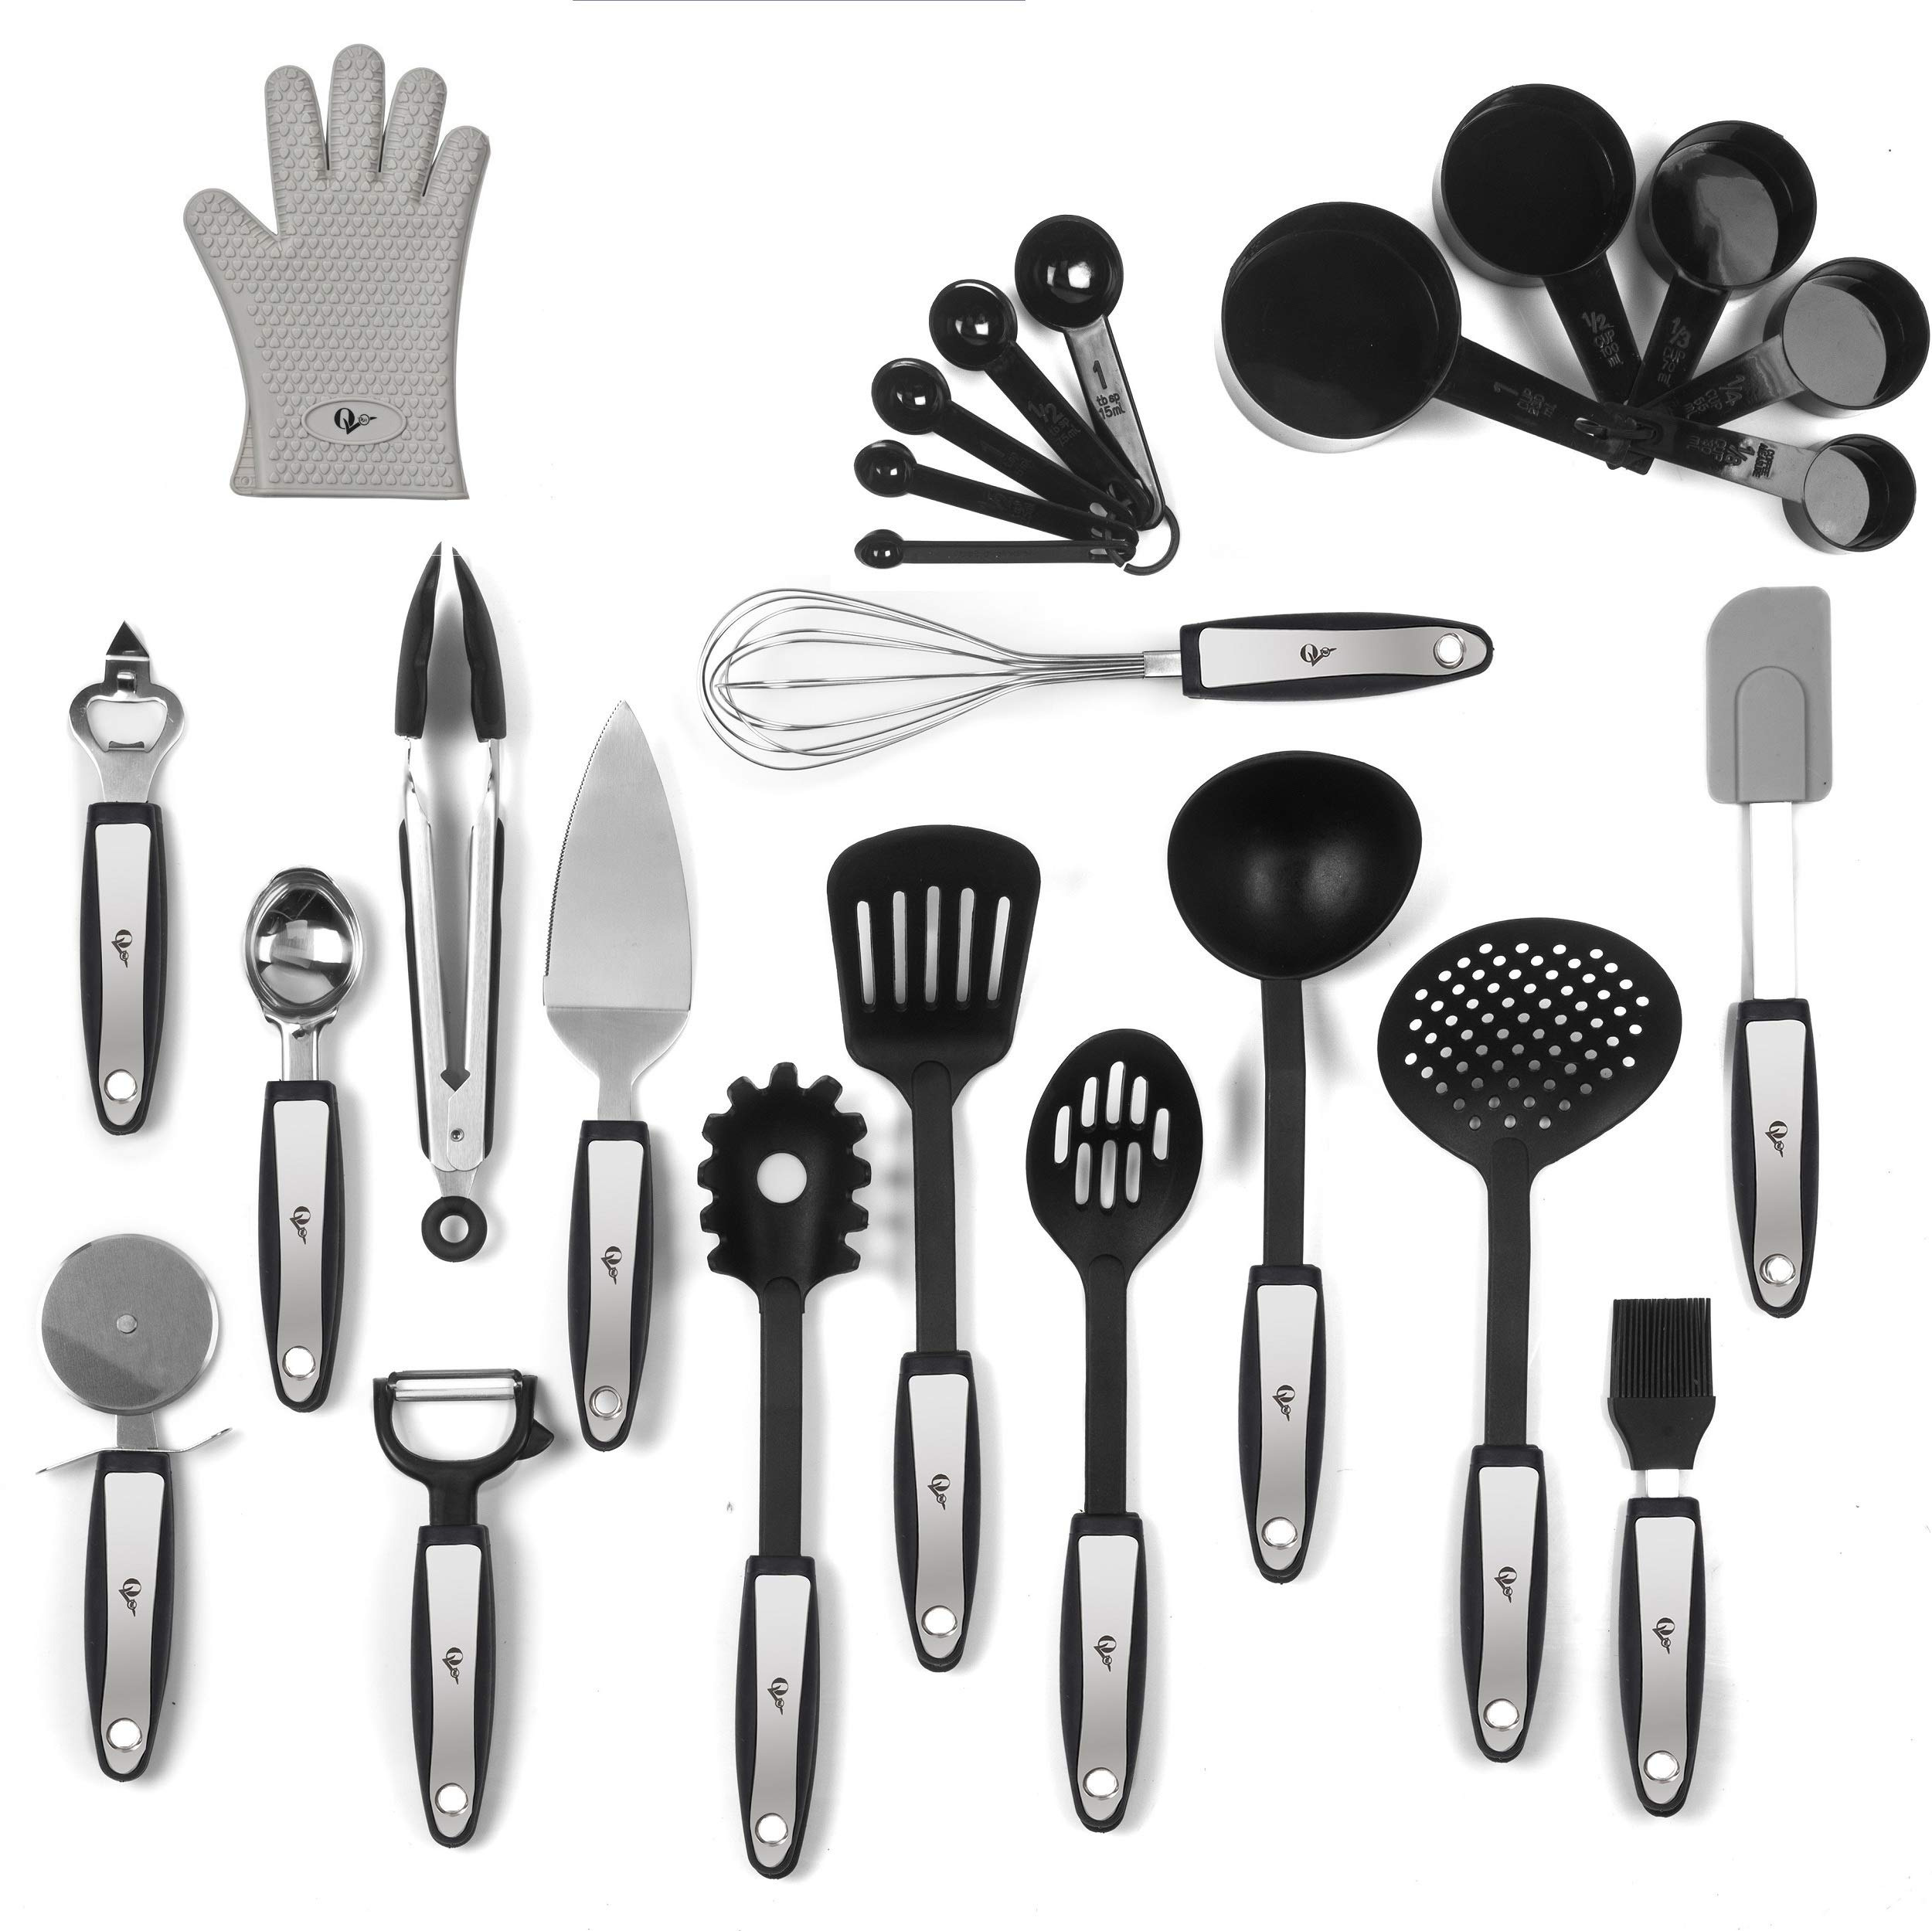 25 Piece Kitchen Tools Set Stainless Steel and Nylon Utensils Tongs, Spatula, Pizza Cutter, Bottle Opener, Brush, Spaghetti server, Soup ladle, Big Whisk,AND MORE buy it and GET Silicon Oven Glove